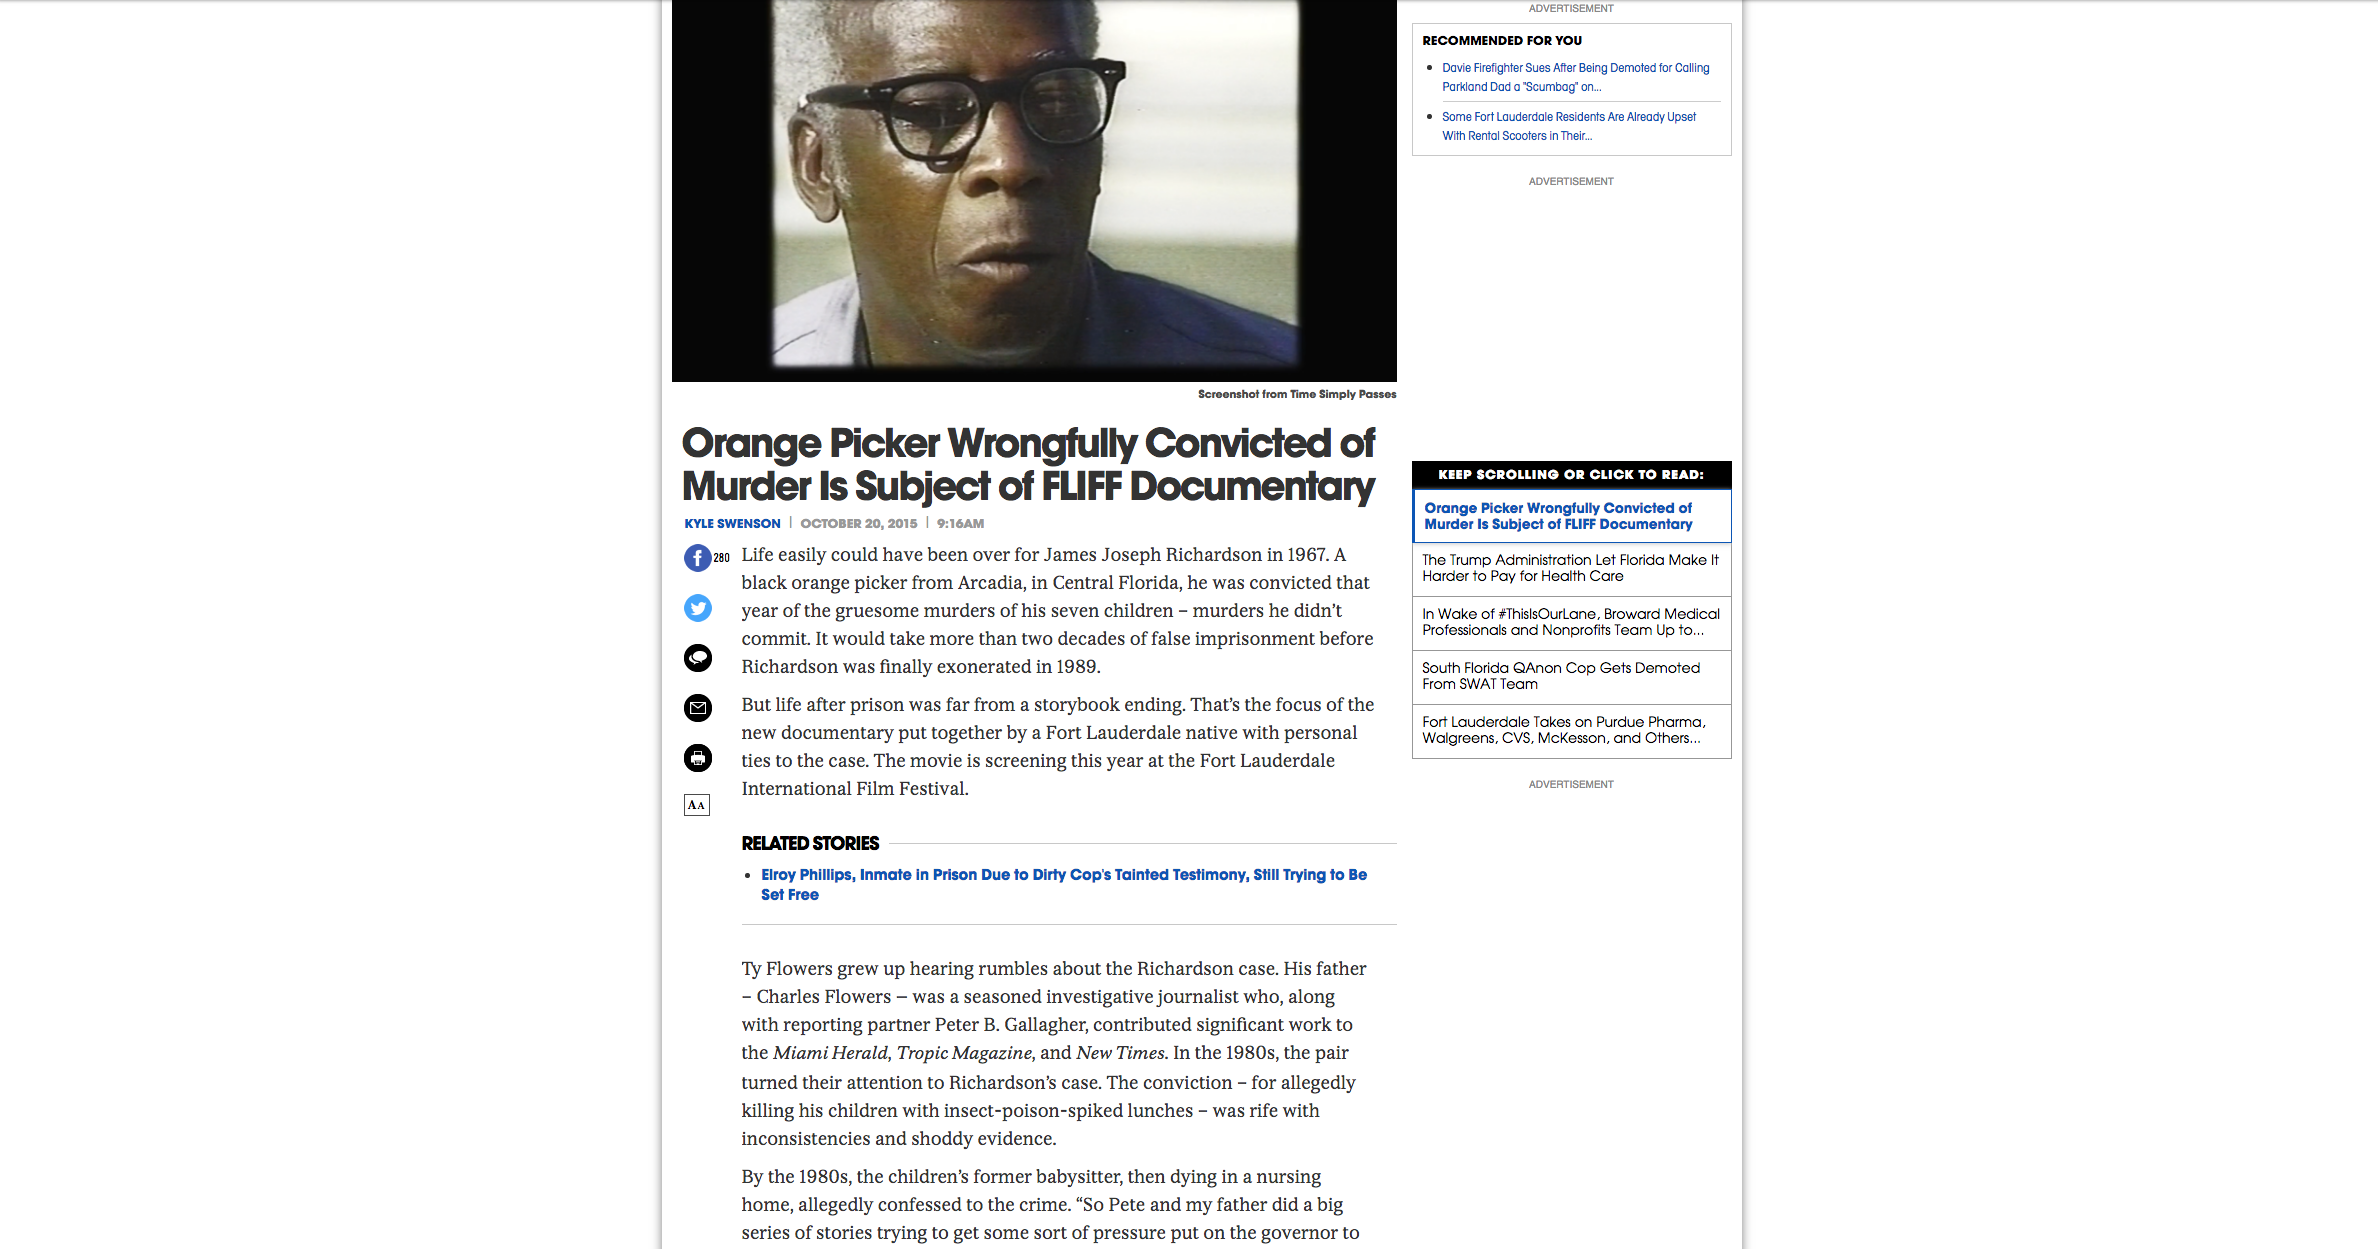 NEW TIMES: Orange Picker Wrongfully convicted of murder is subject of FLIFF documentary.  Tuesday, October 20th, 2015.